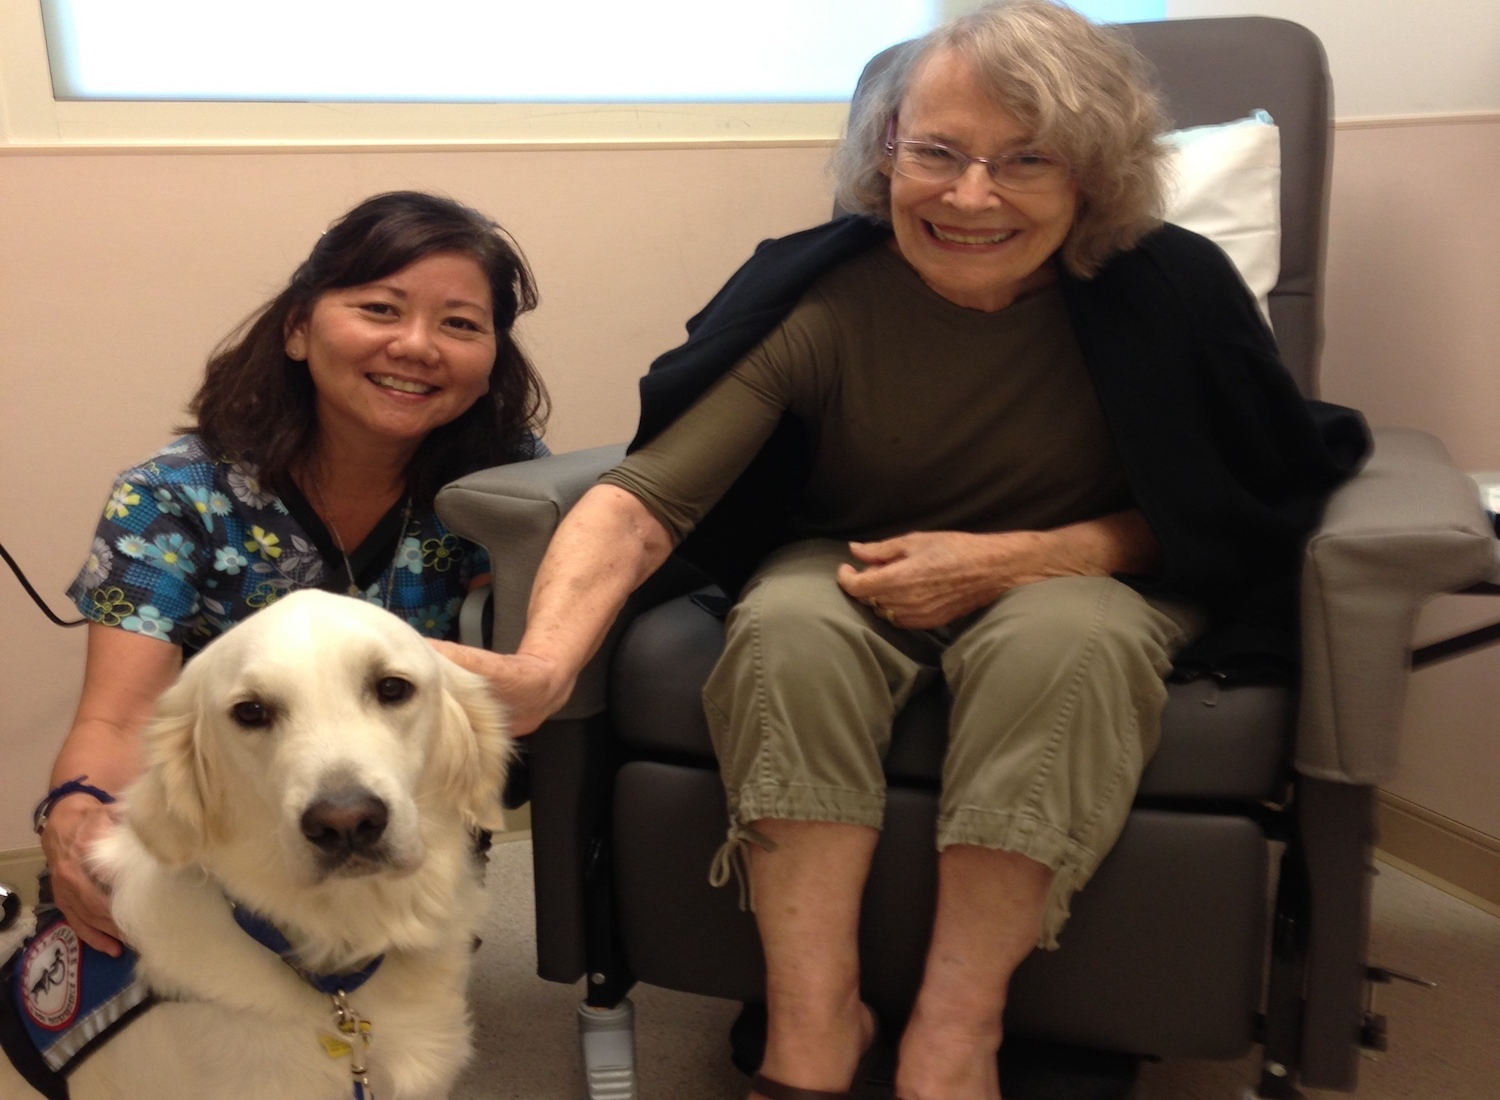 Pat Inada, RN, Yoda, Queen's Therapy Dog, and patient before chemo